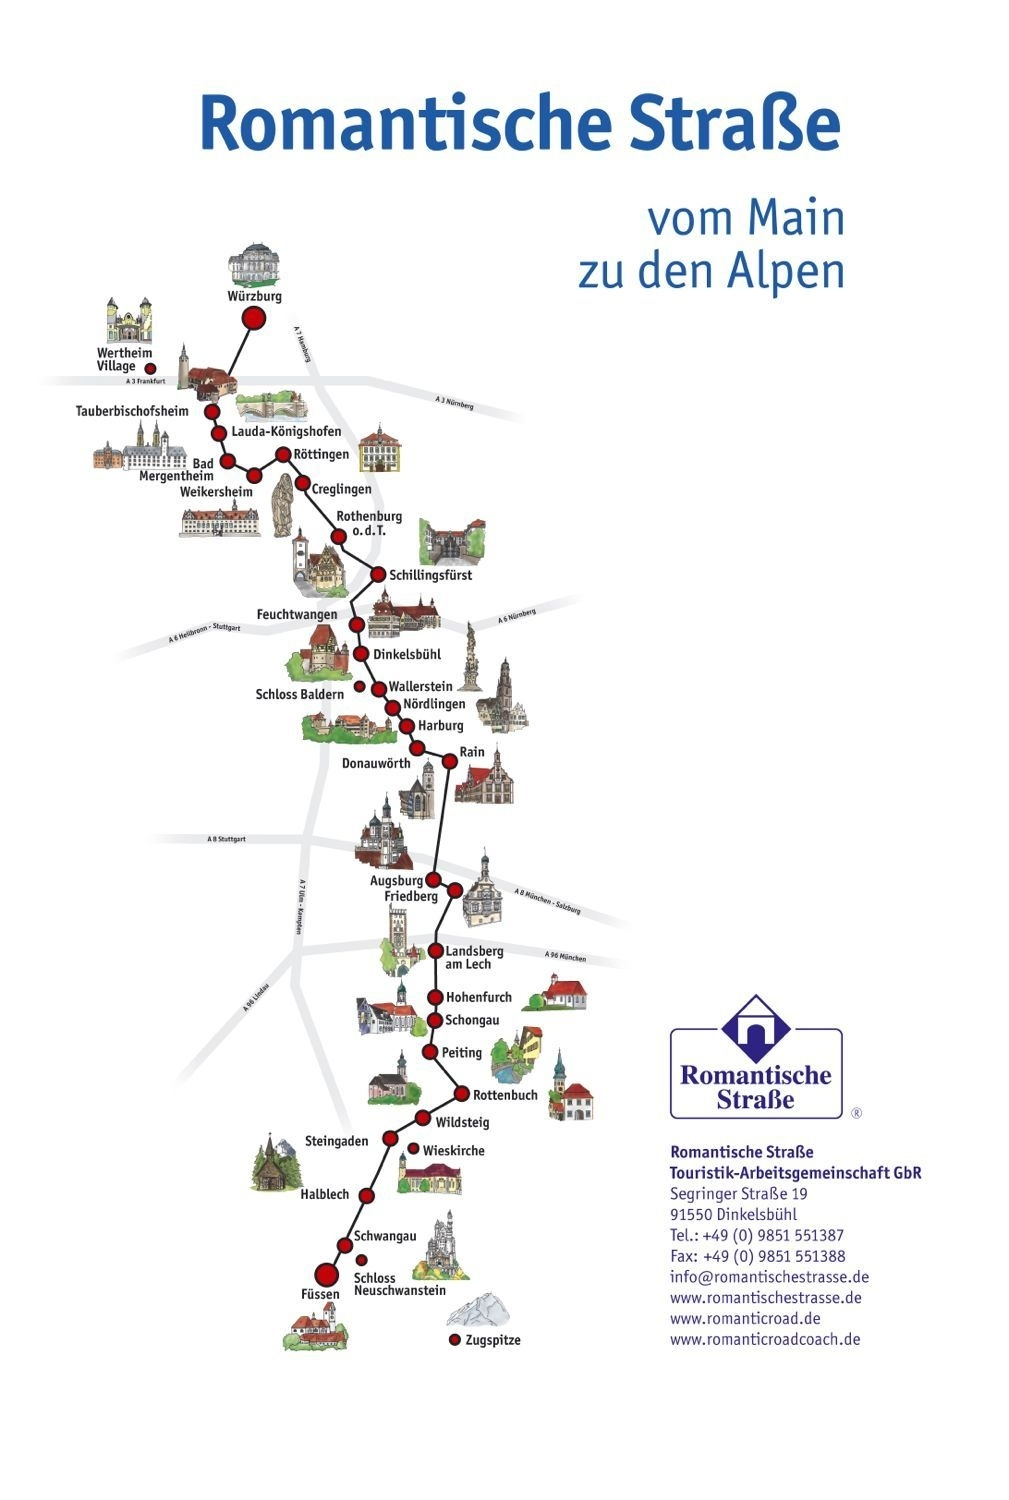 Romantic Road Map In Germany In 2019   Travel   Romantic Road intended for Romantic Road Germany Map